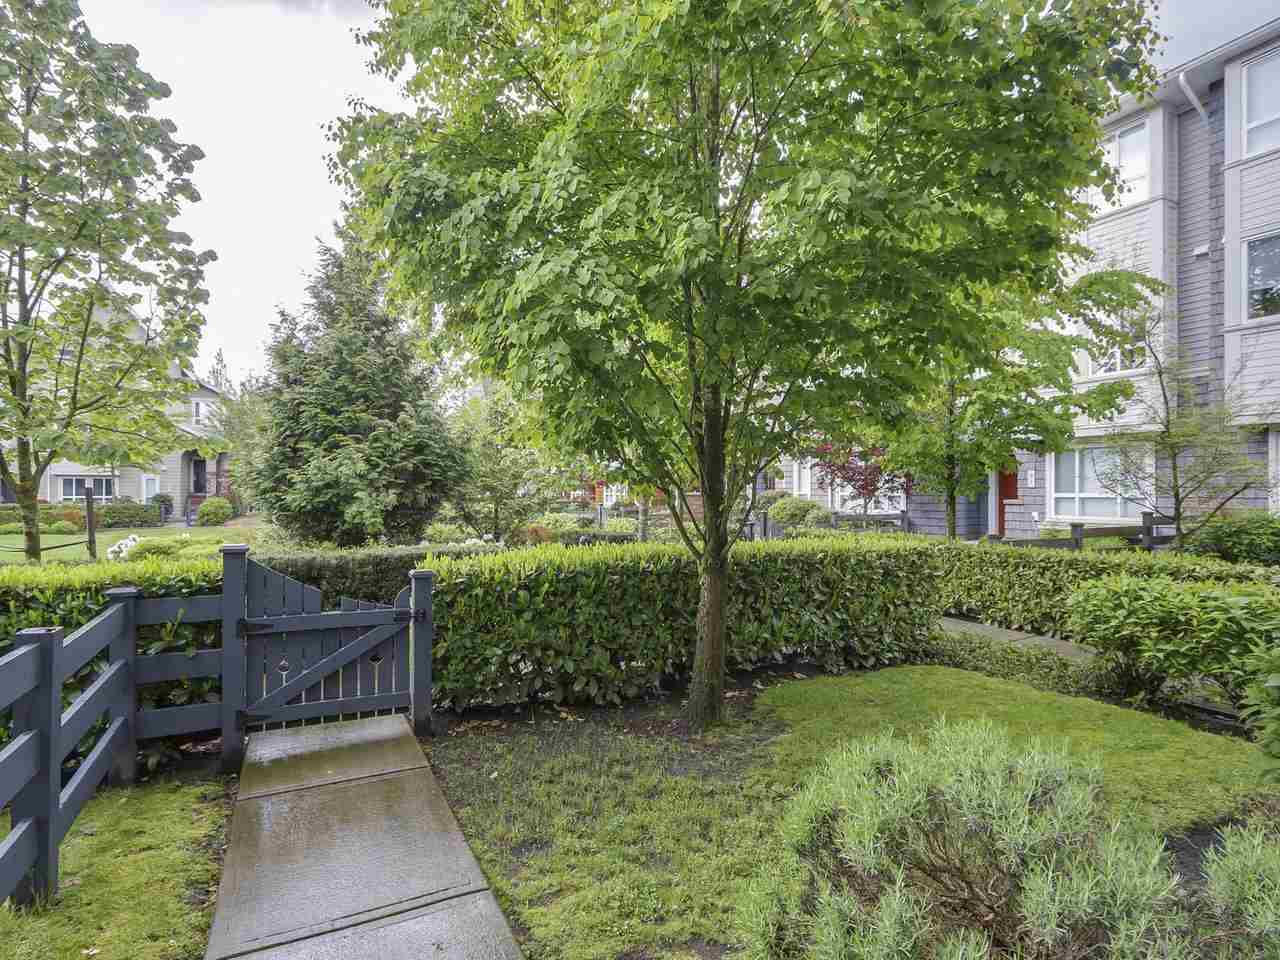 Photo 3: # 110 - 2418 Avon  Place in Port Coquitlam: Riverwood Townhouse for sale : MLS(r) # R2166312